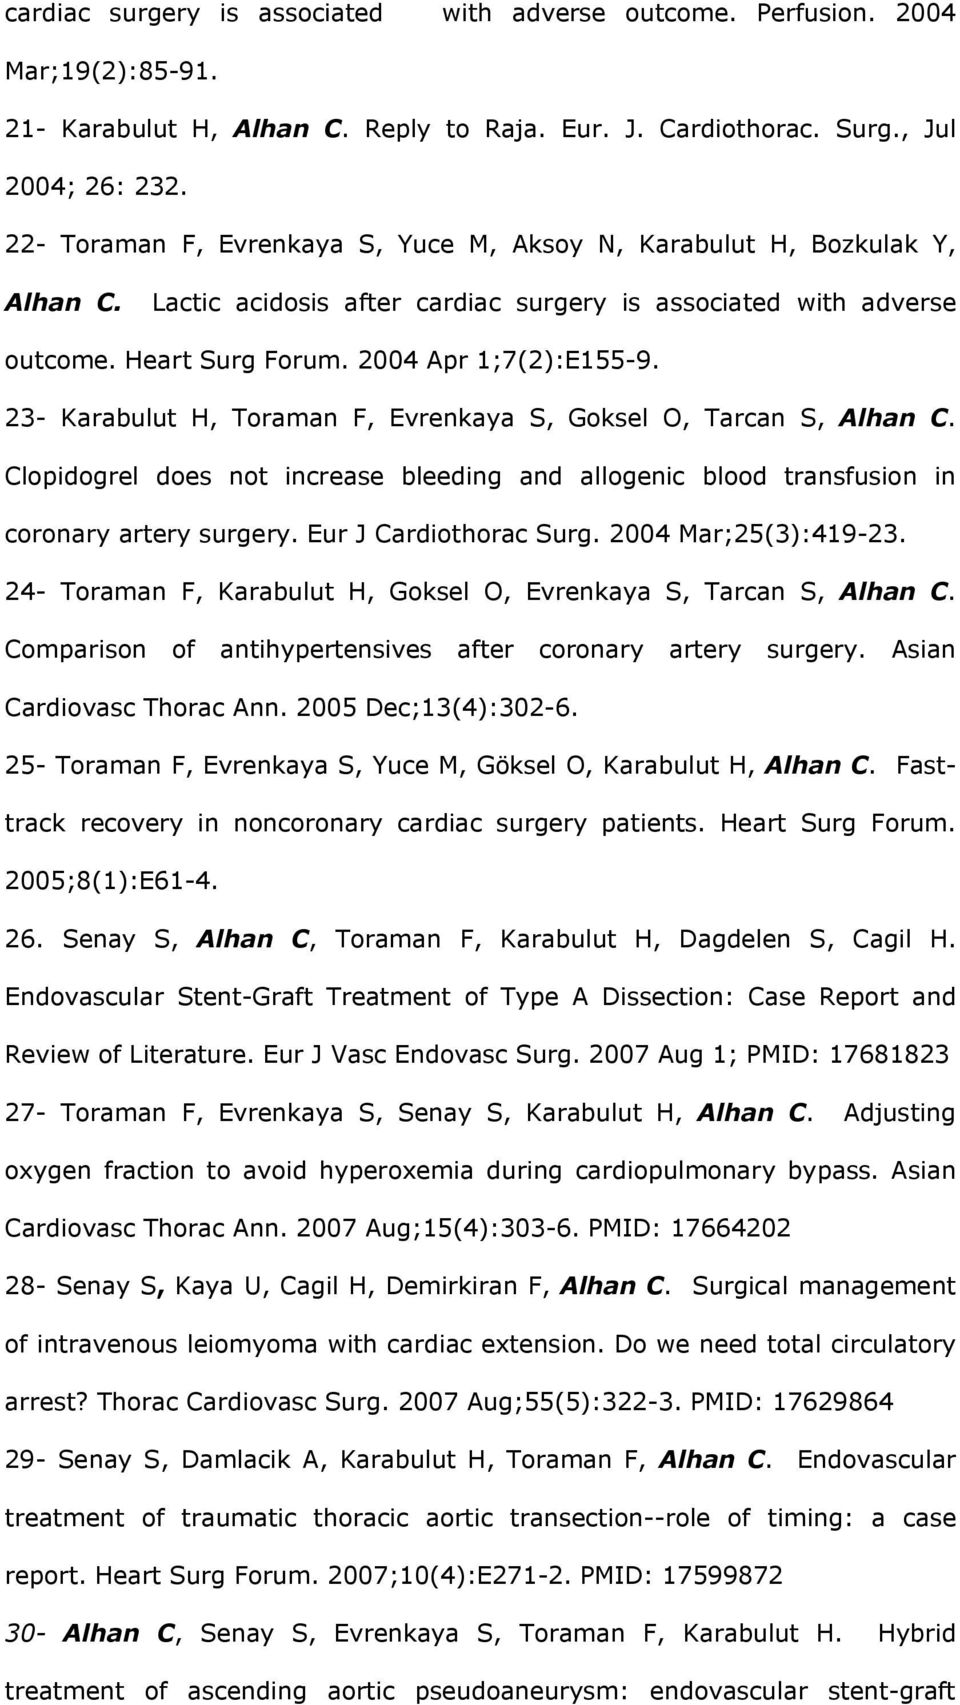 23- Karabulut H, Toraman F, Evrenkaya S, Goksel O, Tarcan S, Alhan C. Clopidogrel does not increase bleeding and allogenic blood transfusion in coronary artery surgery. Eur J Cardiothorac Surg.